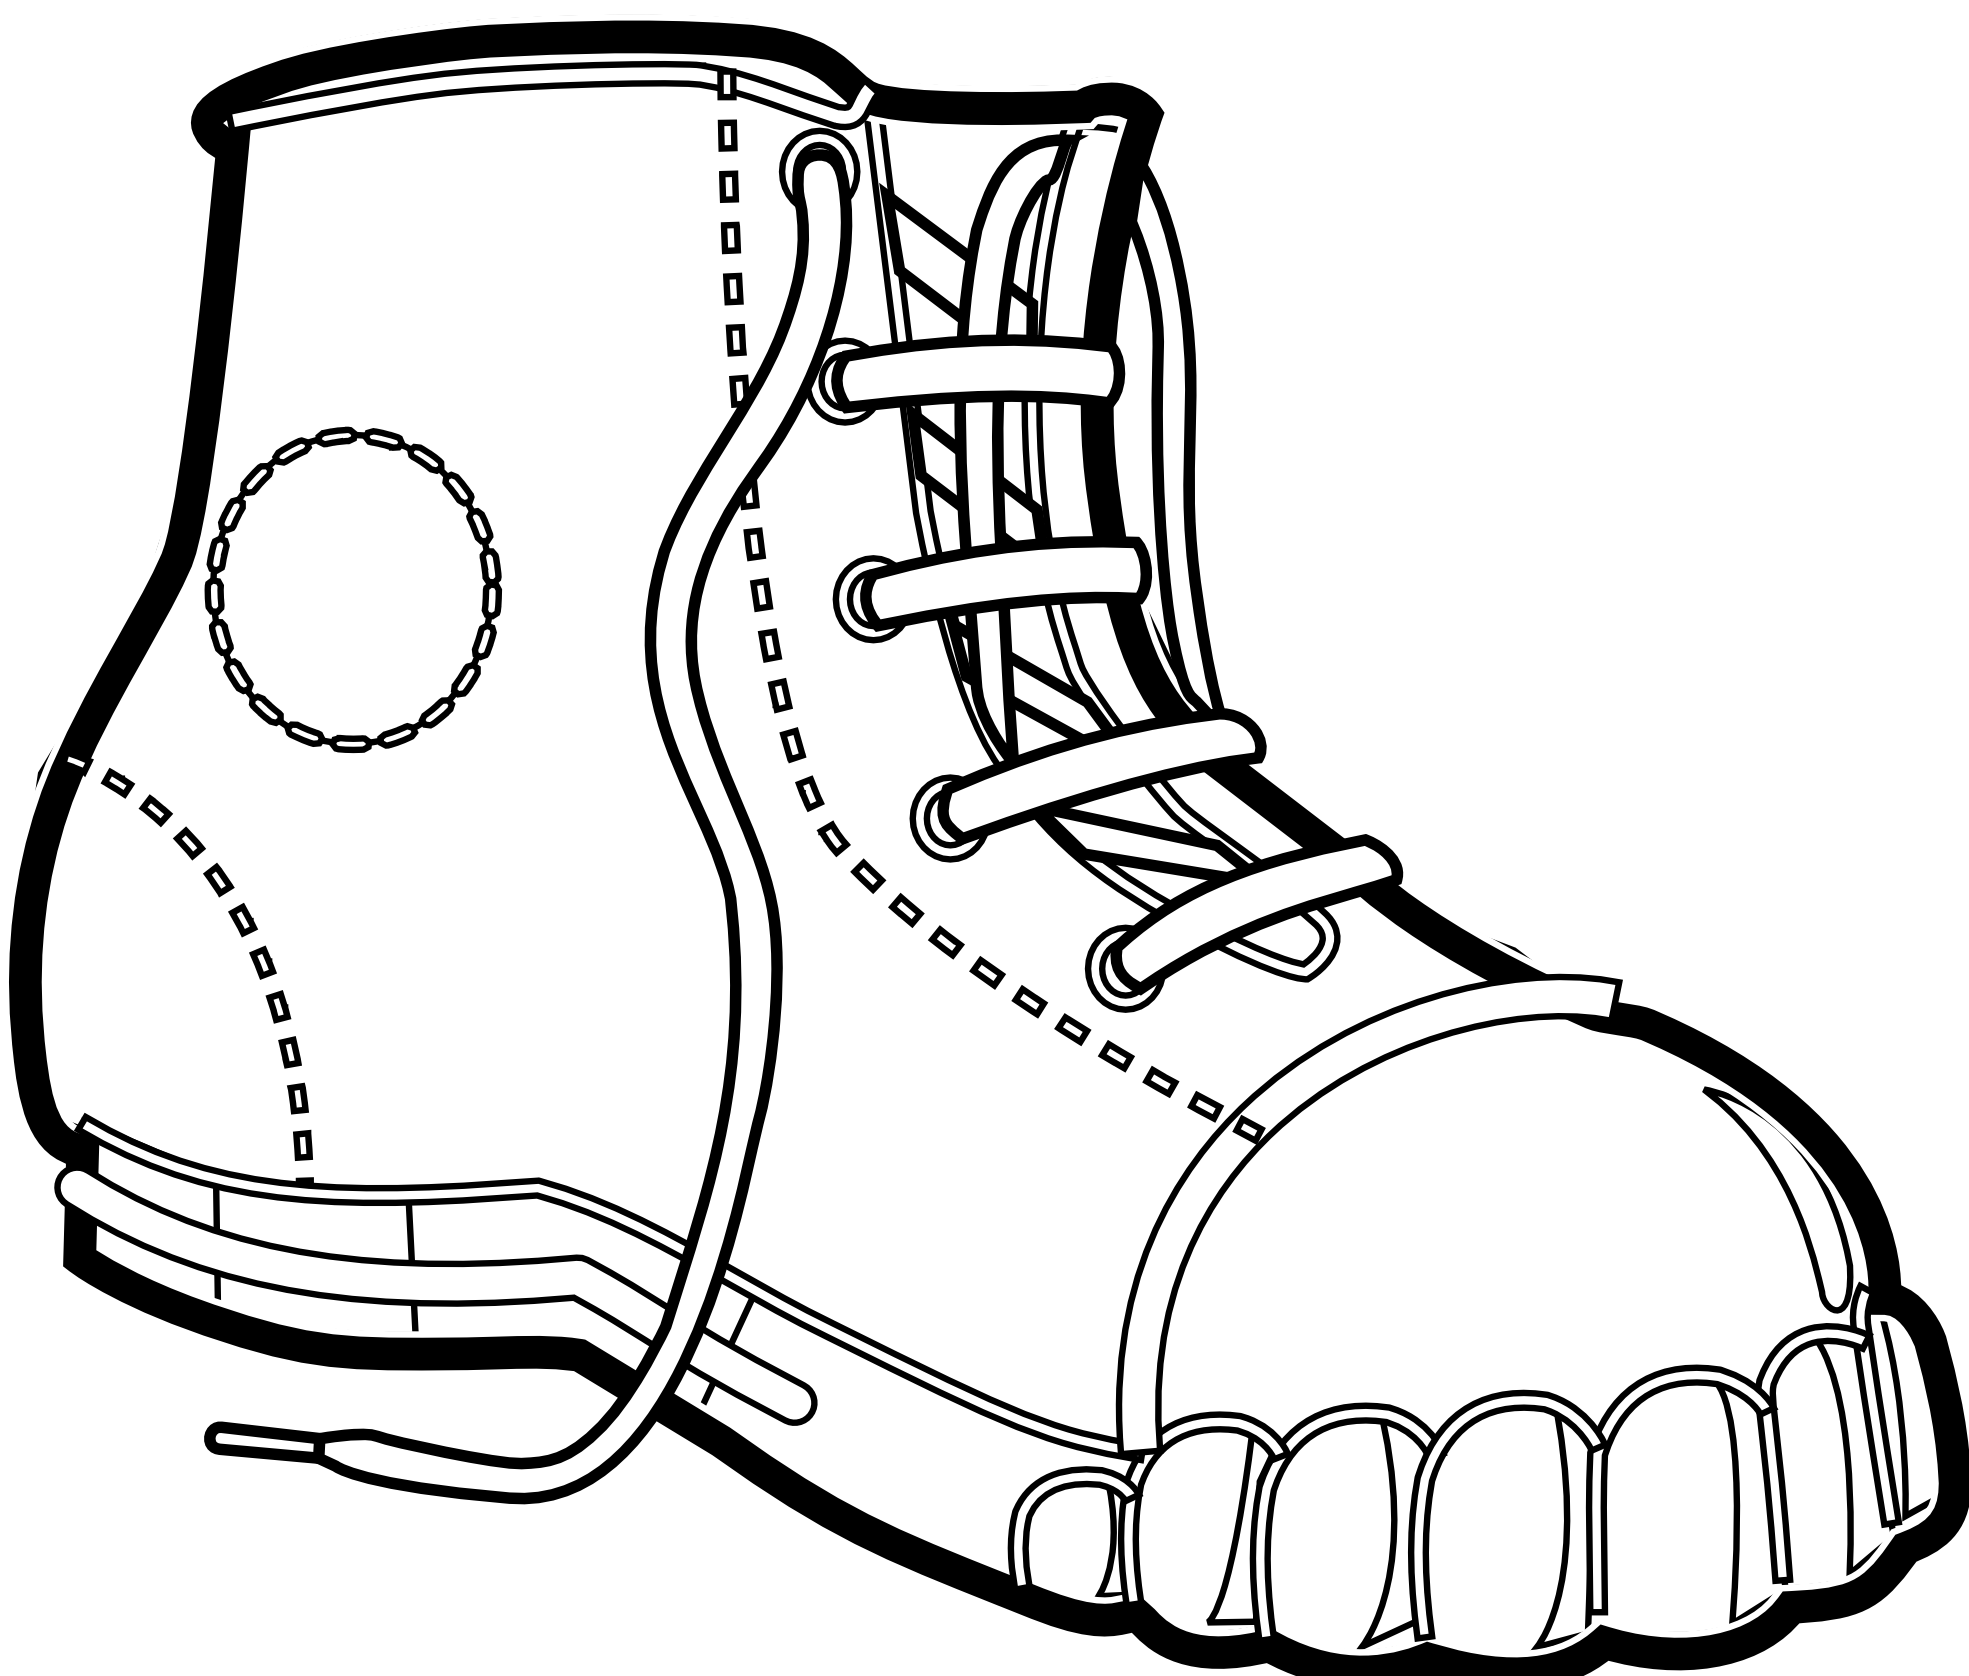 Clip Art Boots Clip Art clip art snow boots santa barbara institute for consciousness boots